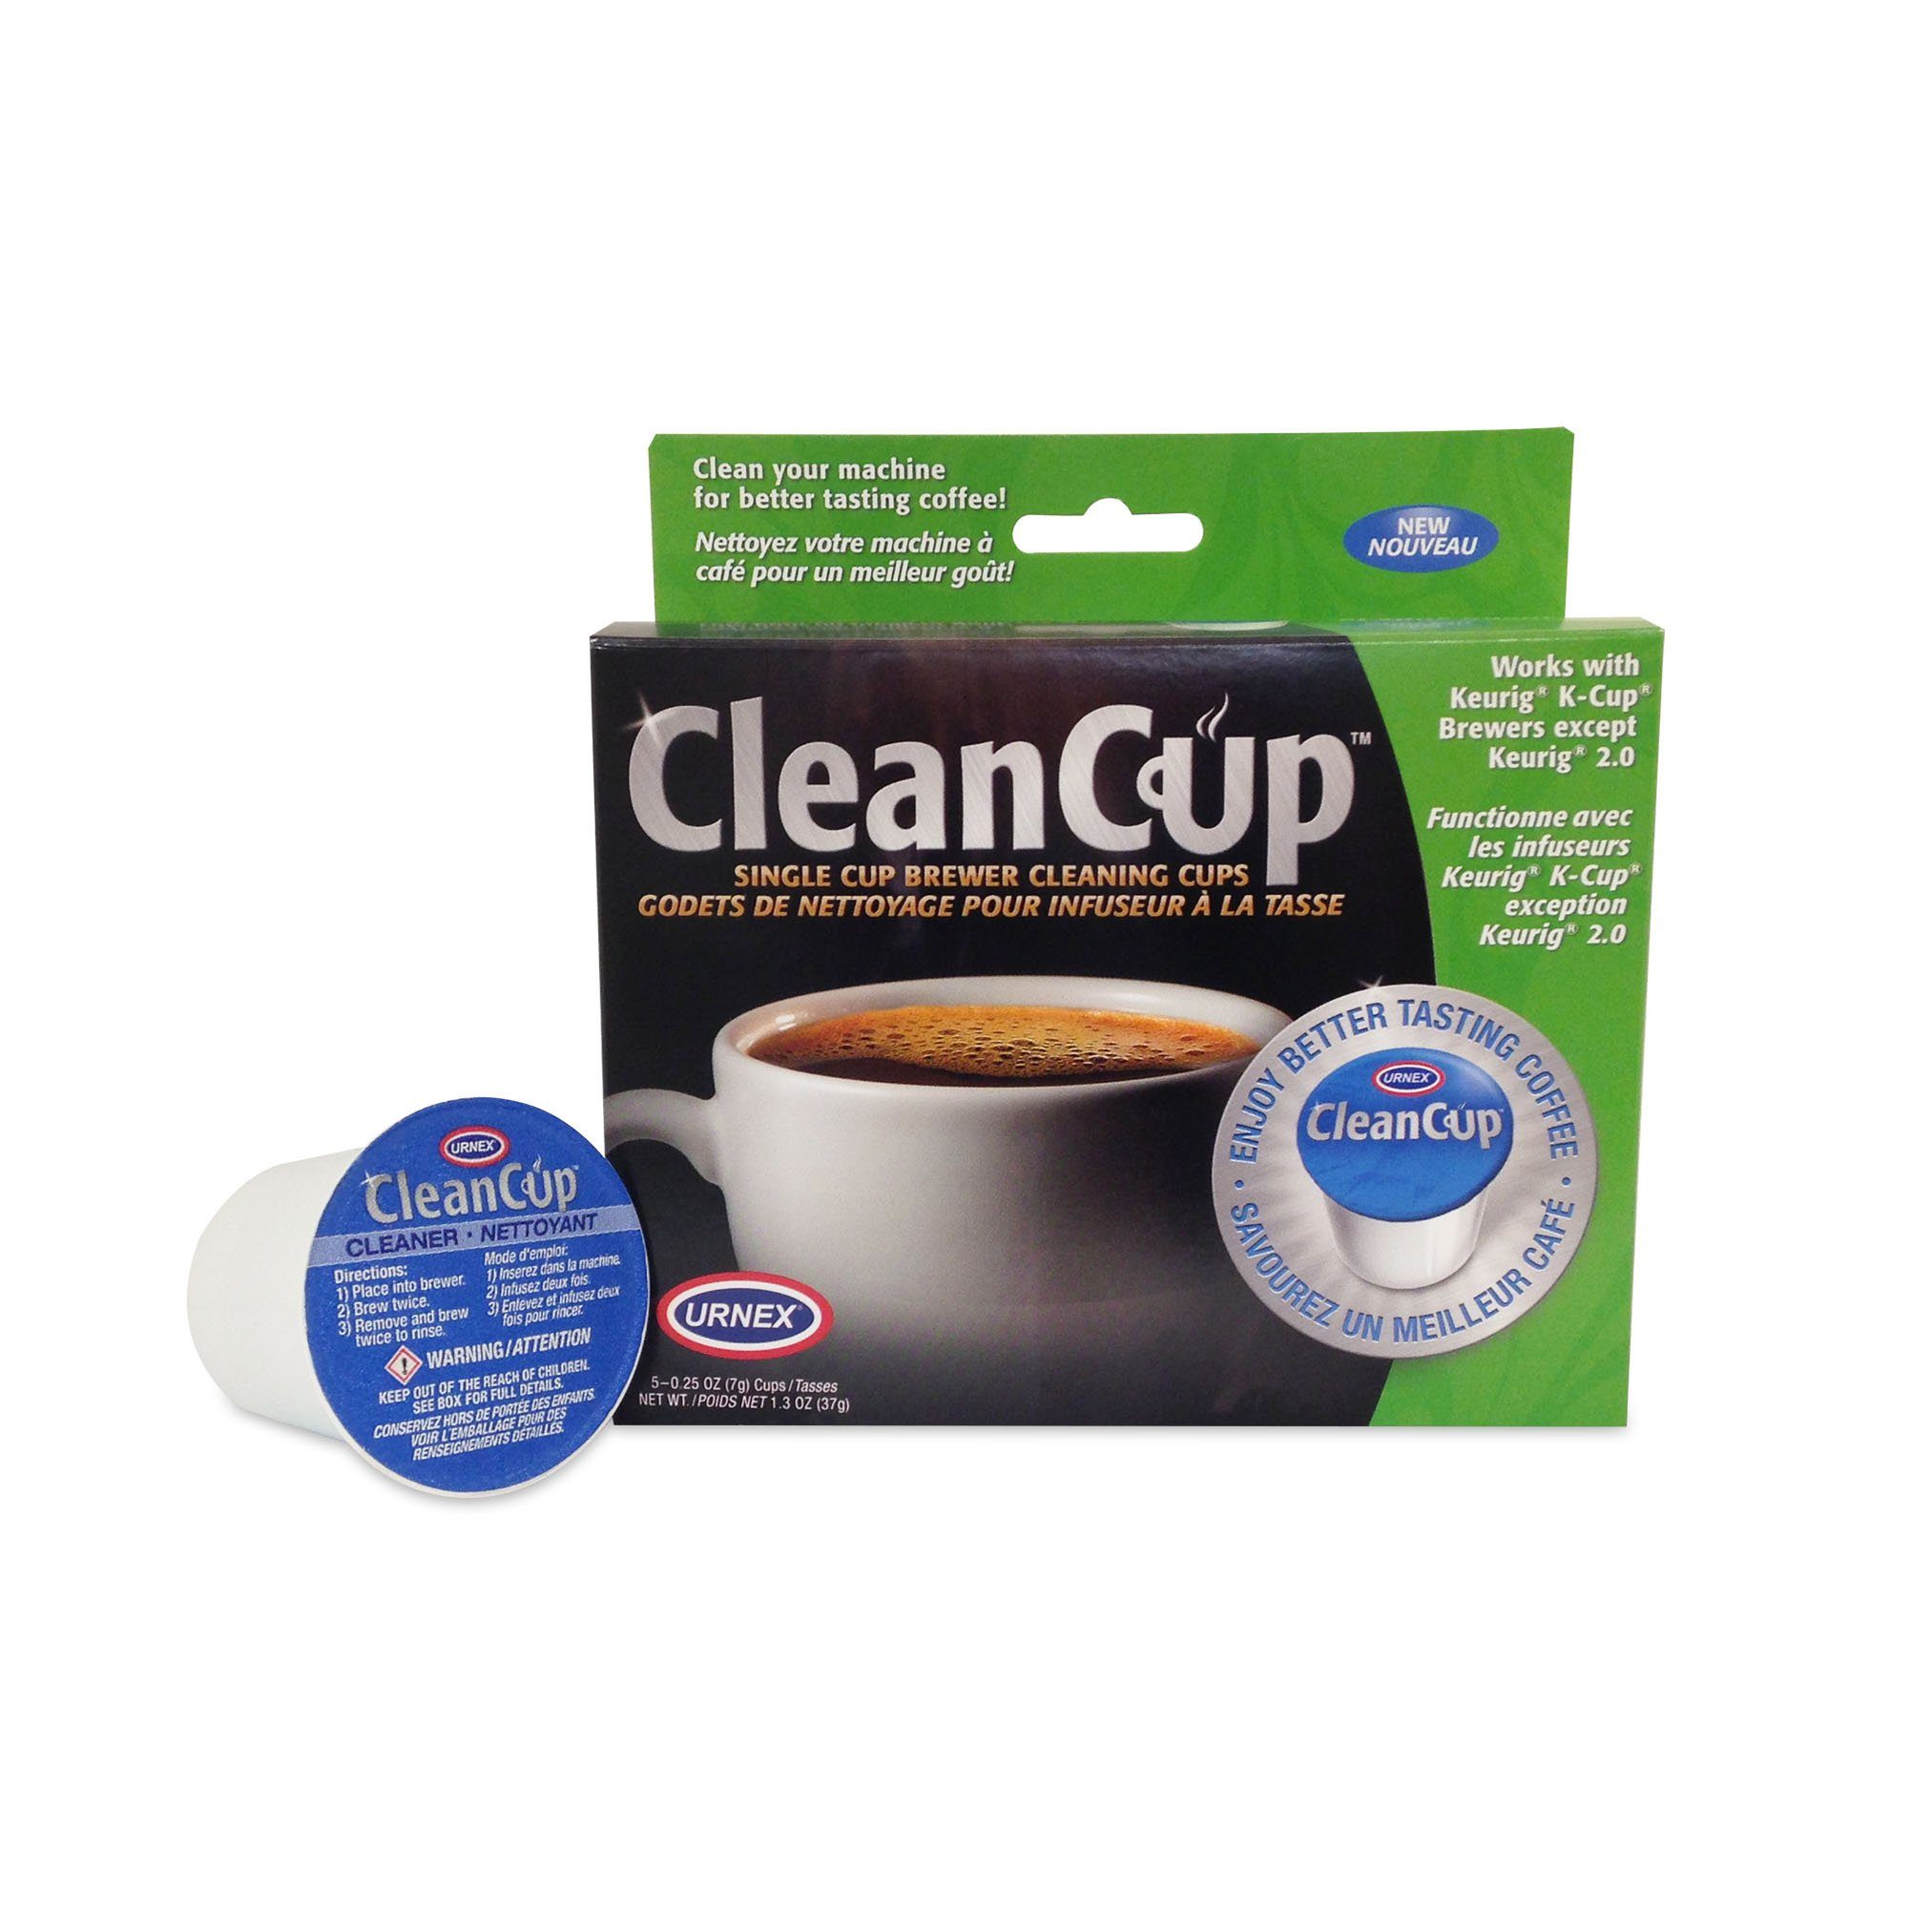 Urnex K-Cup Coffee Maker Cleaner - 5 Pods - Coffee Cleaner Use With Keurig and K Cup Machines